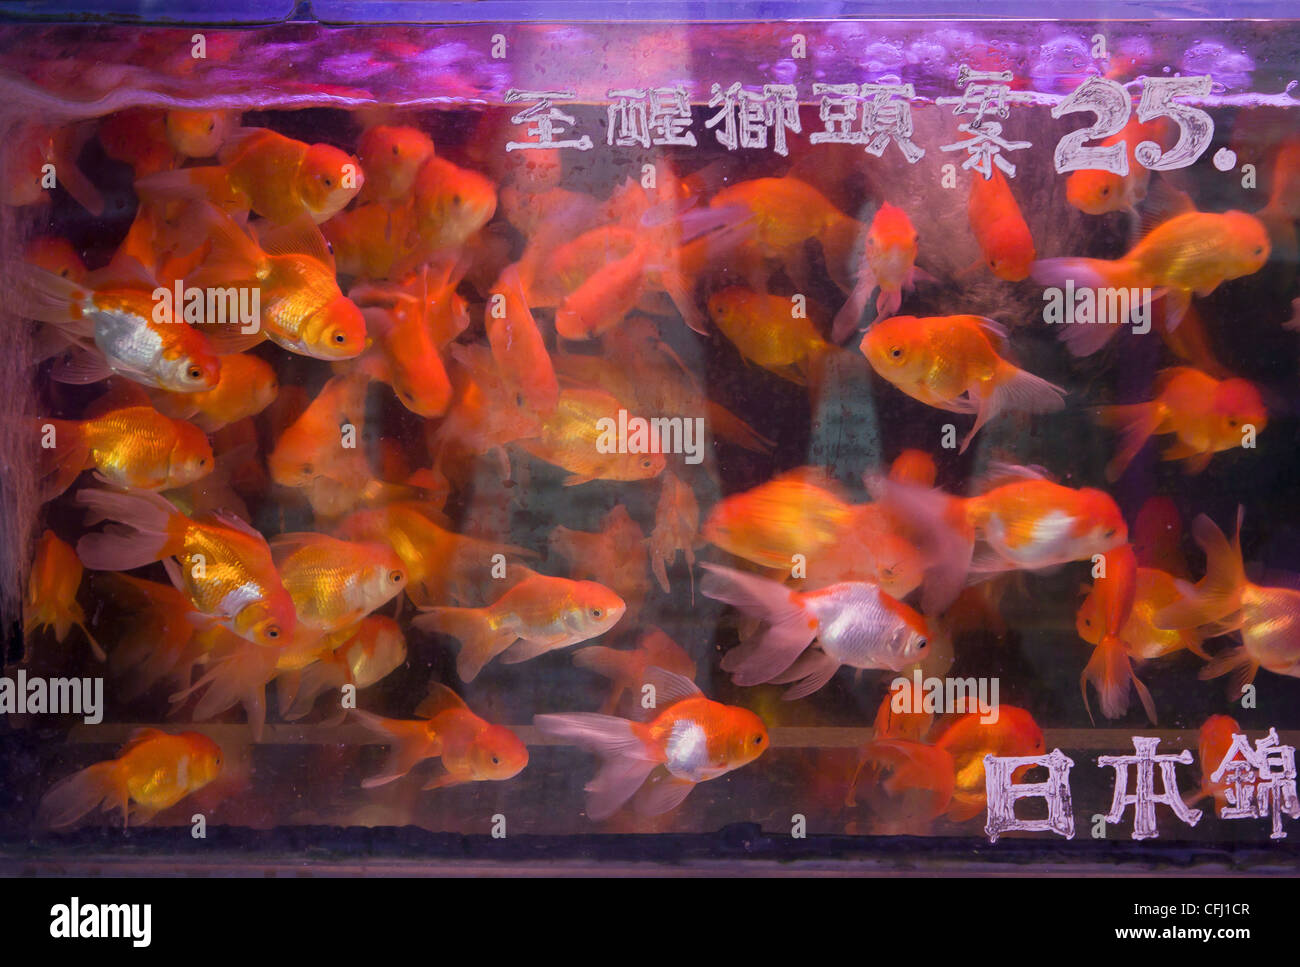 Pet Gold Fish Stock Photos & Pet Gold Fish Stock Images - Alamy